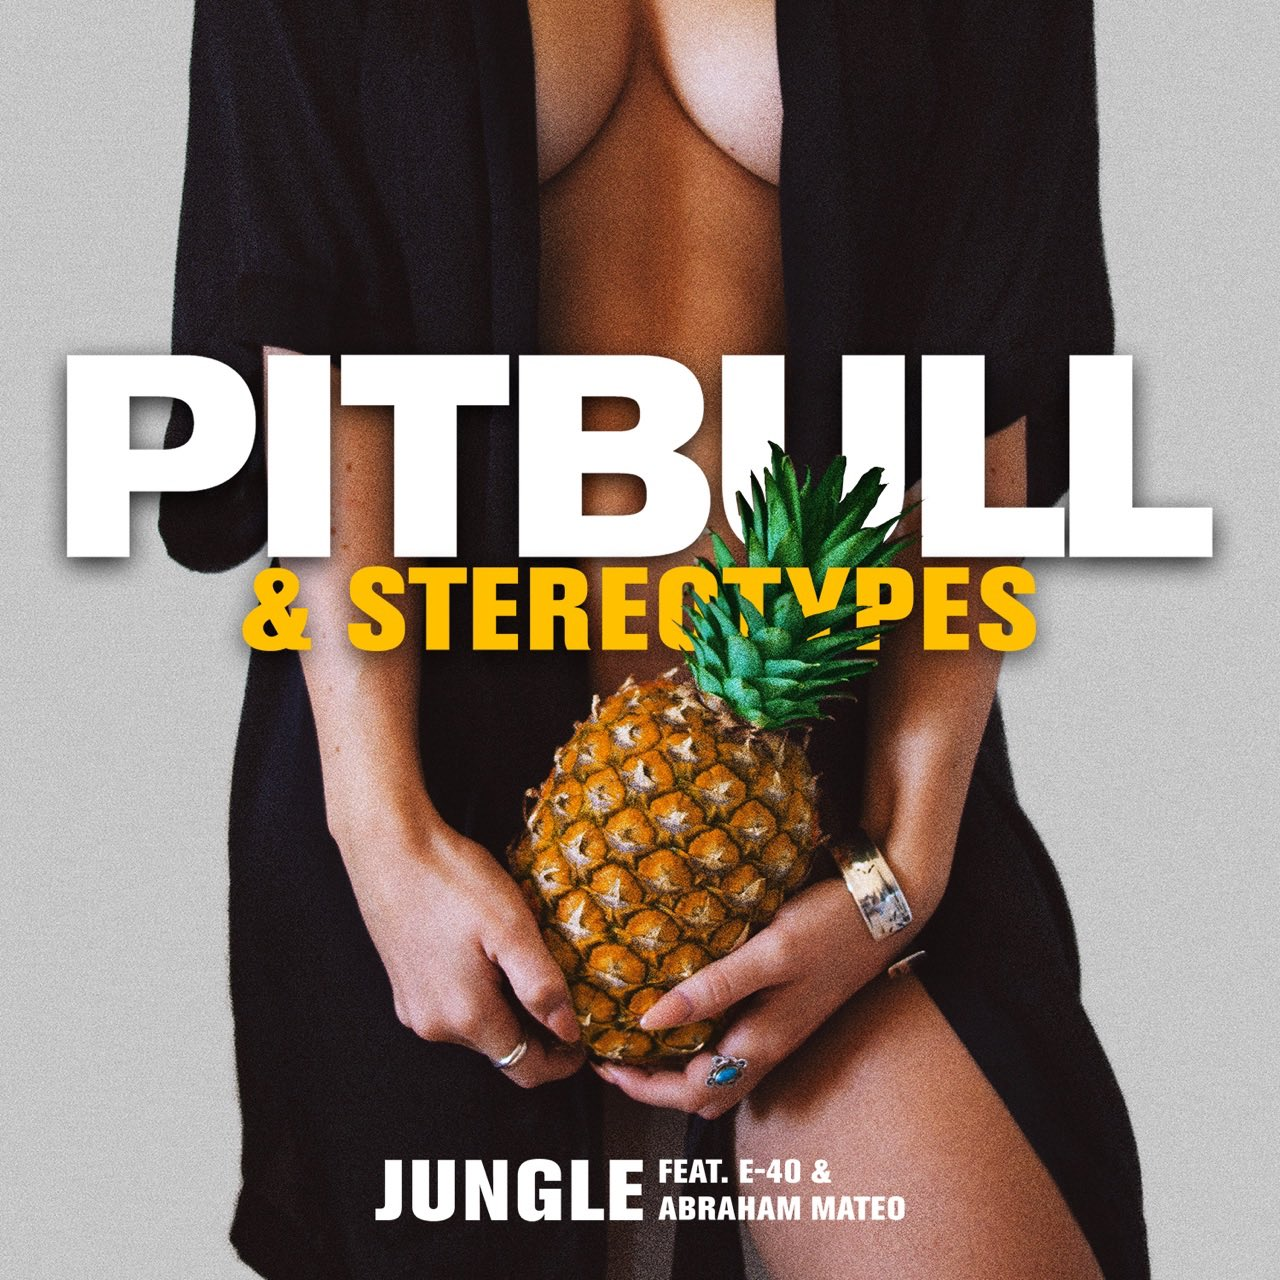 'Shake what your mama gave you' #Jungle with @Stereotypes Ft @E40 & @AbrahamMateo out now https://t.co/jDoFGclXZG https://t.co/oMPSUAwfZI